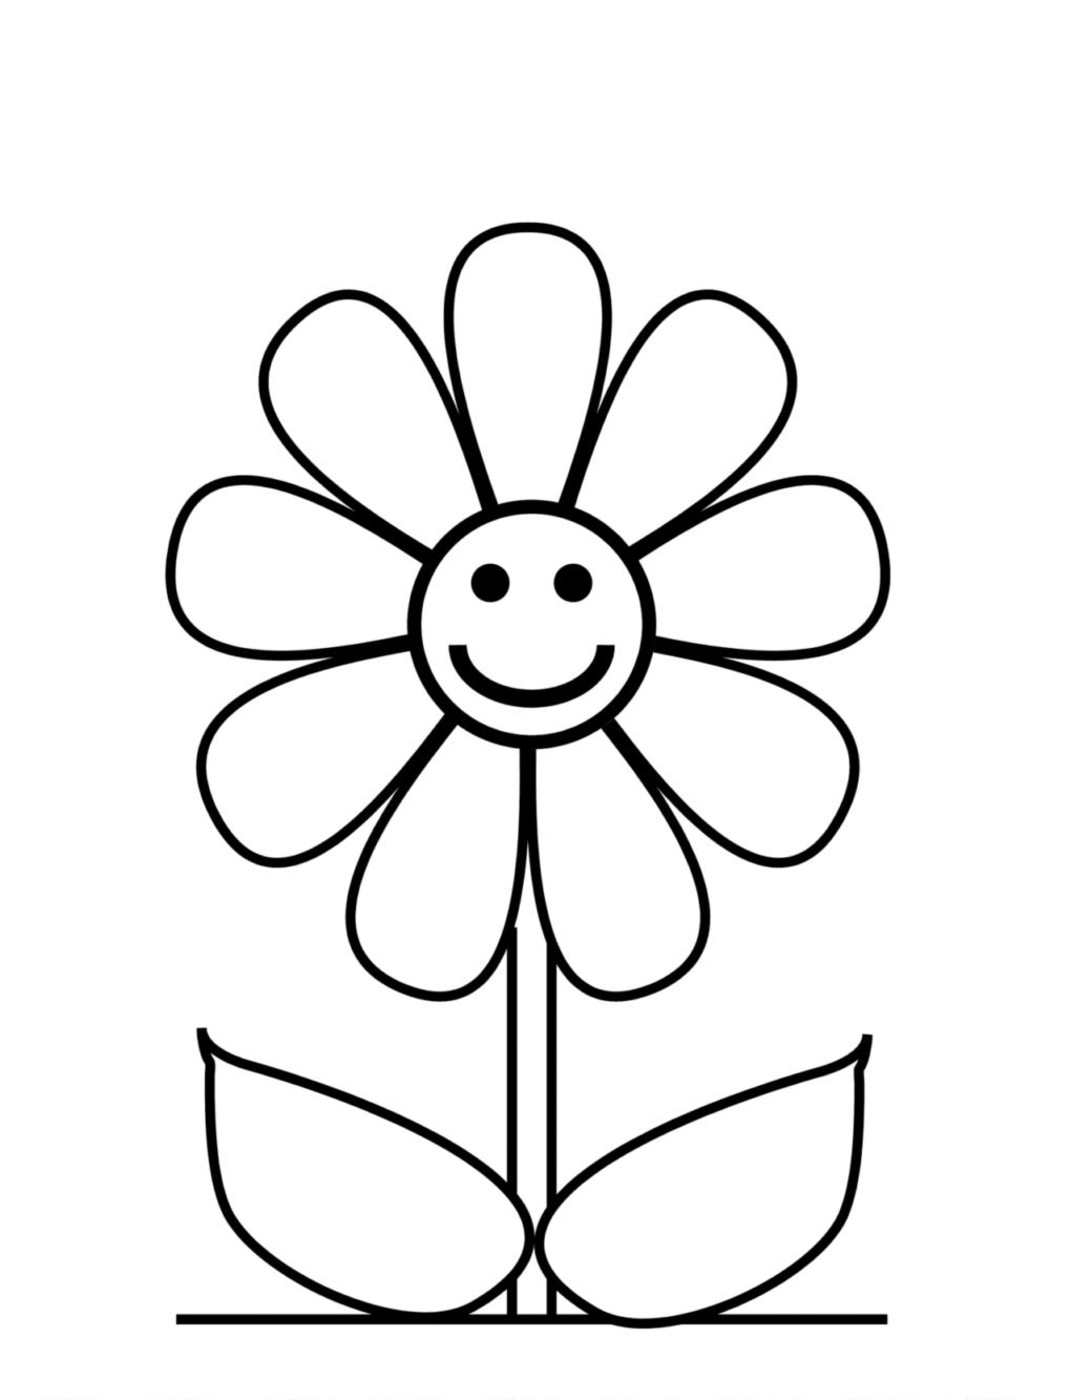 coloring pages of a flower - photo#3